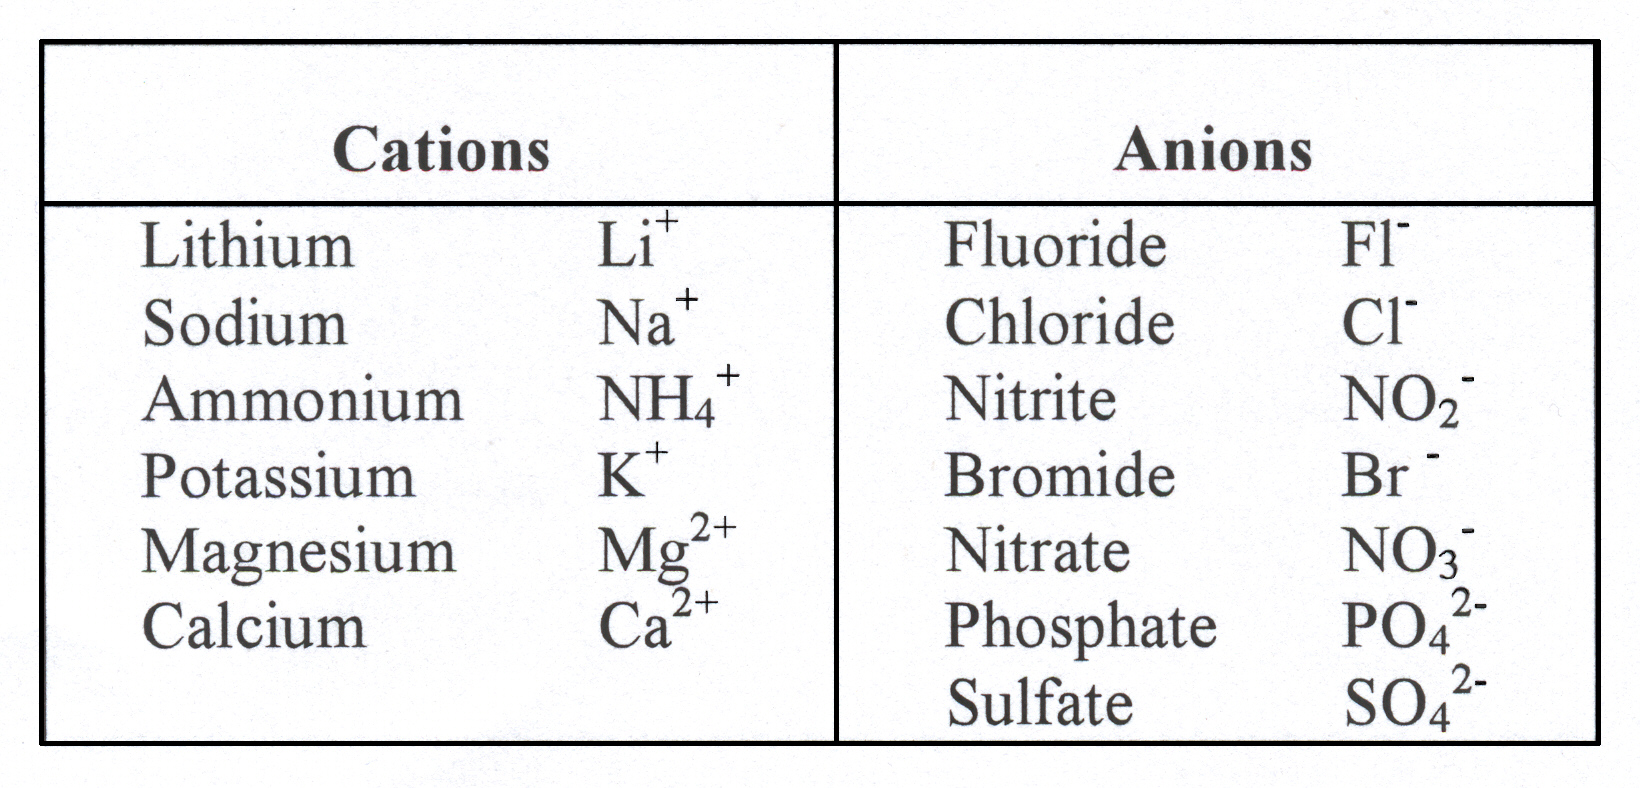 cations and anions